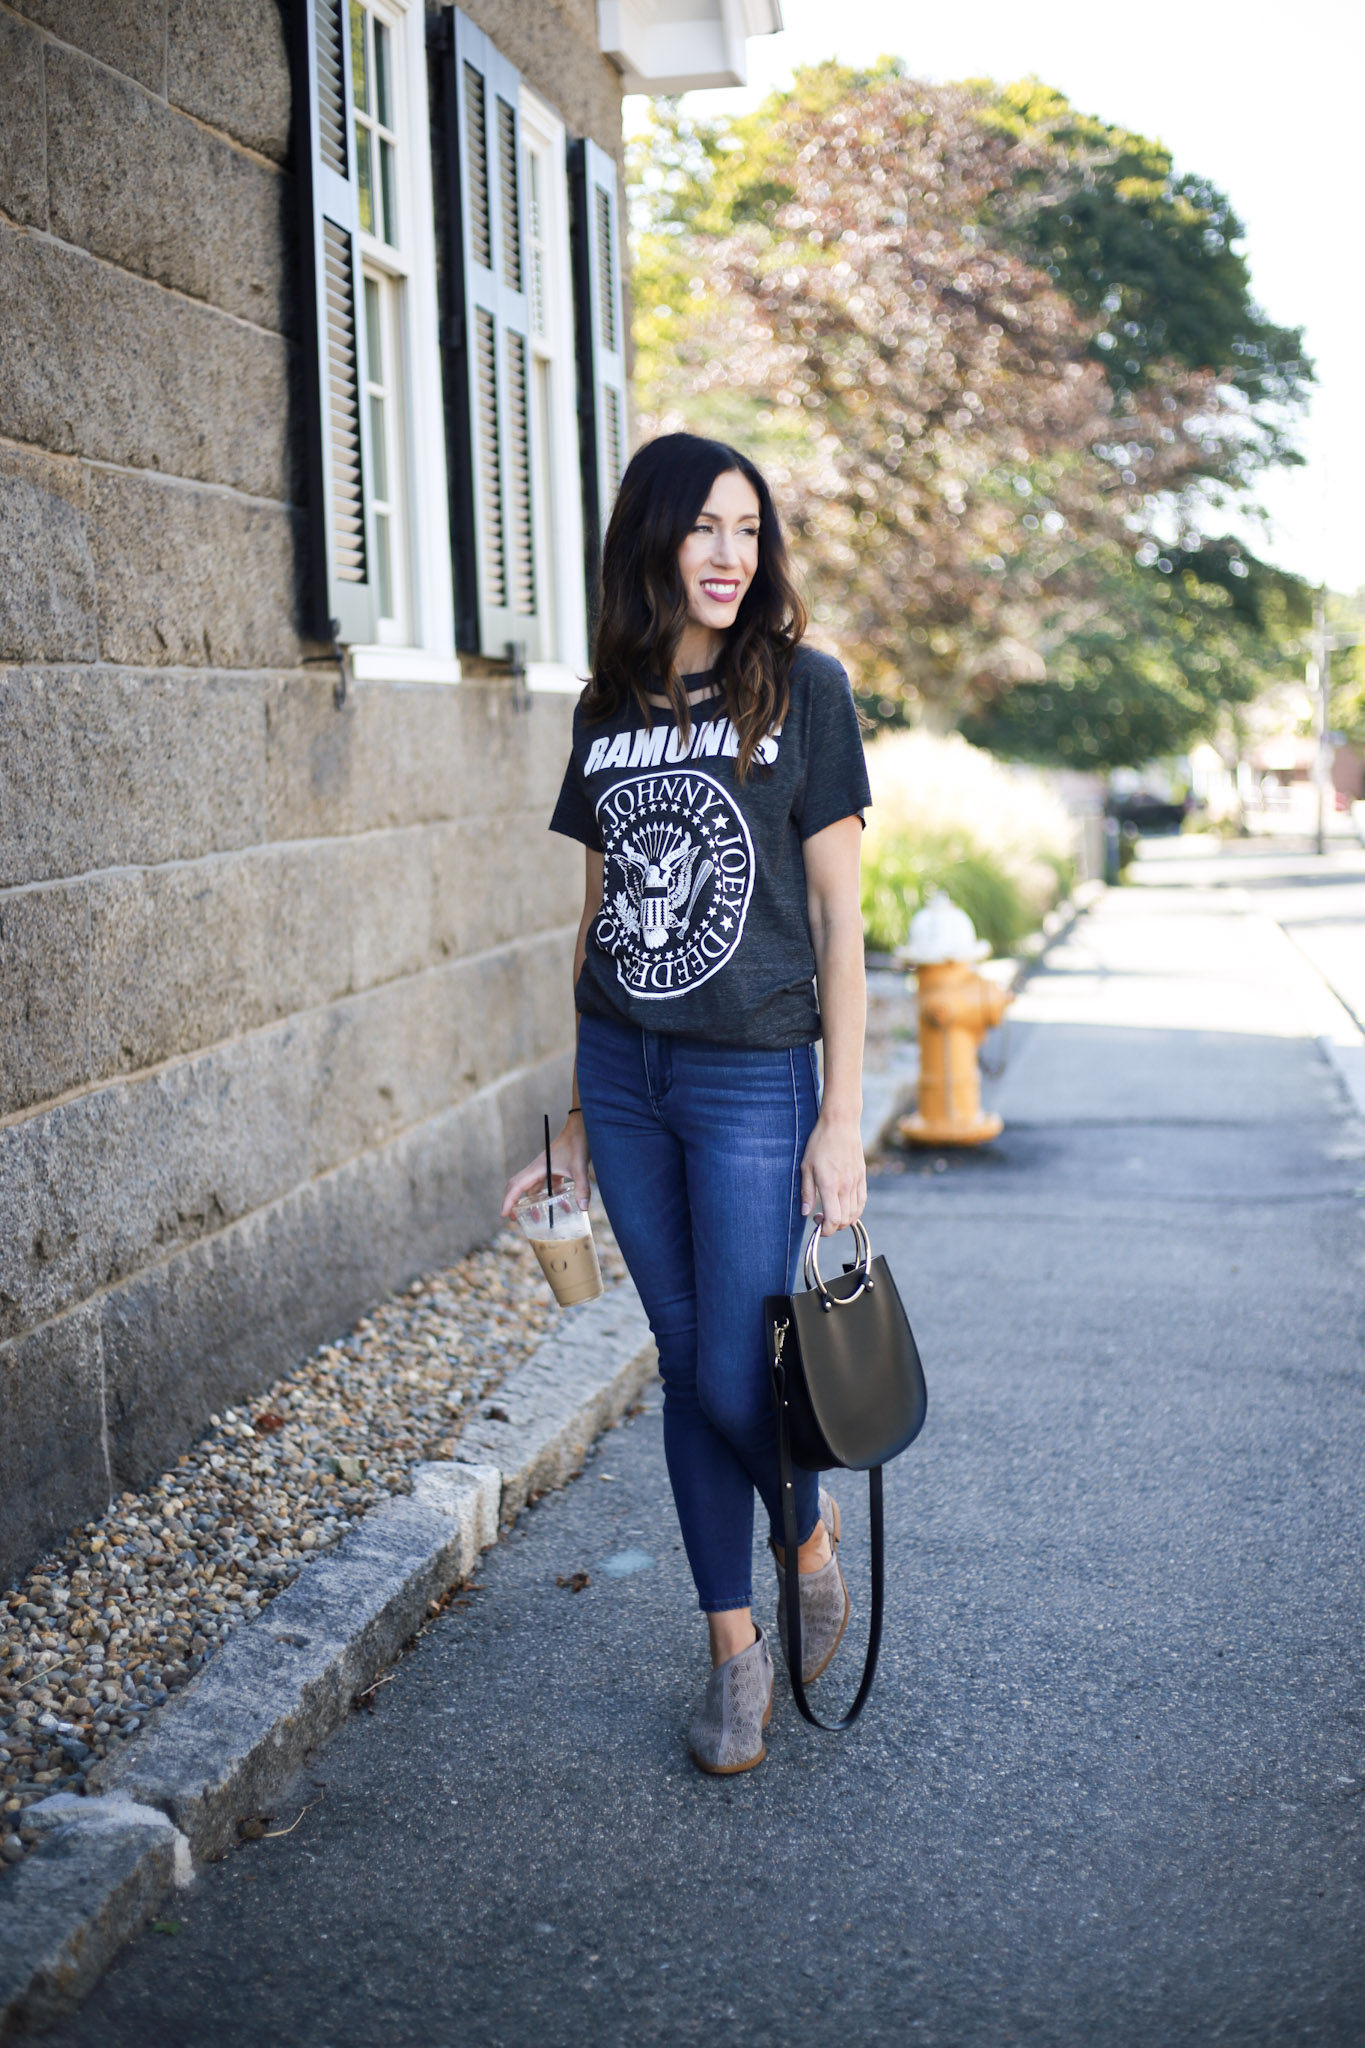 styling graphic tees and the best Labor Day Sales! - Band Tees + Rocking Labor Day Sales by Boston fashion blogger Living Life Pretty